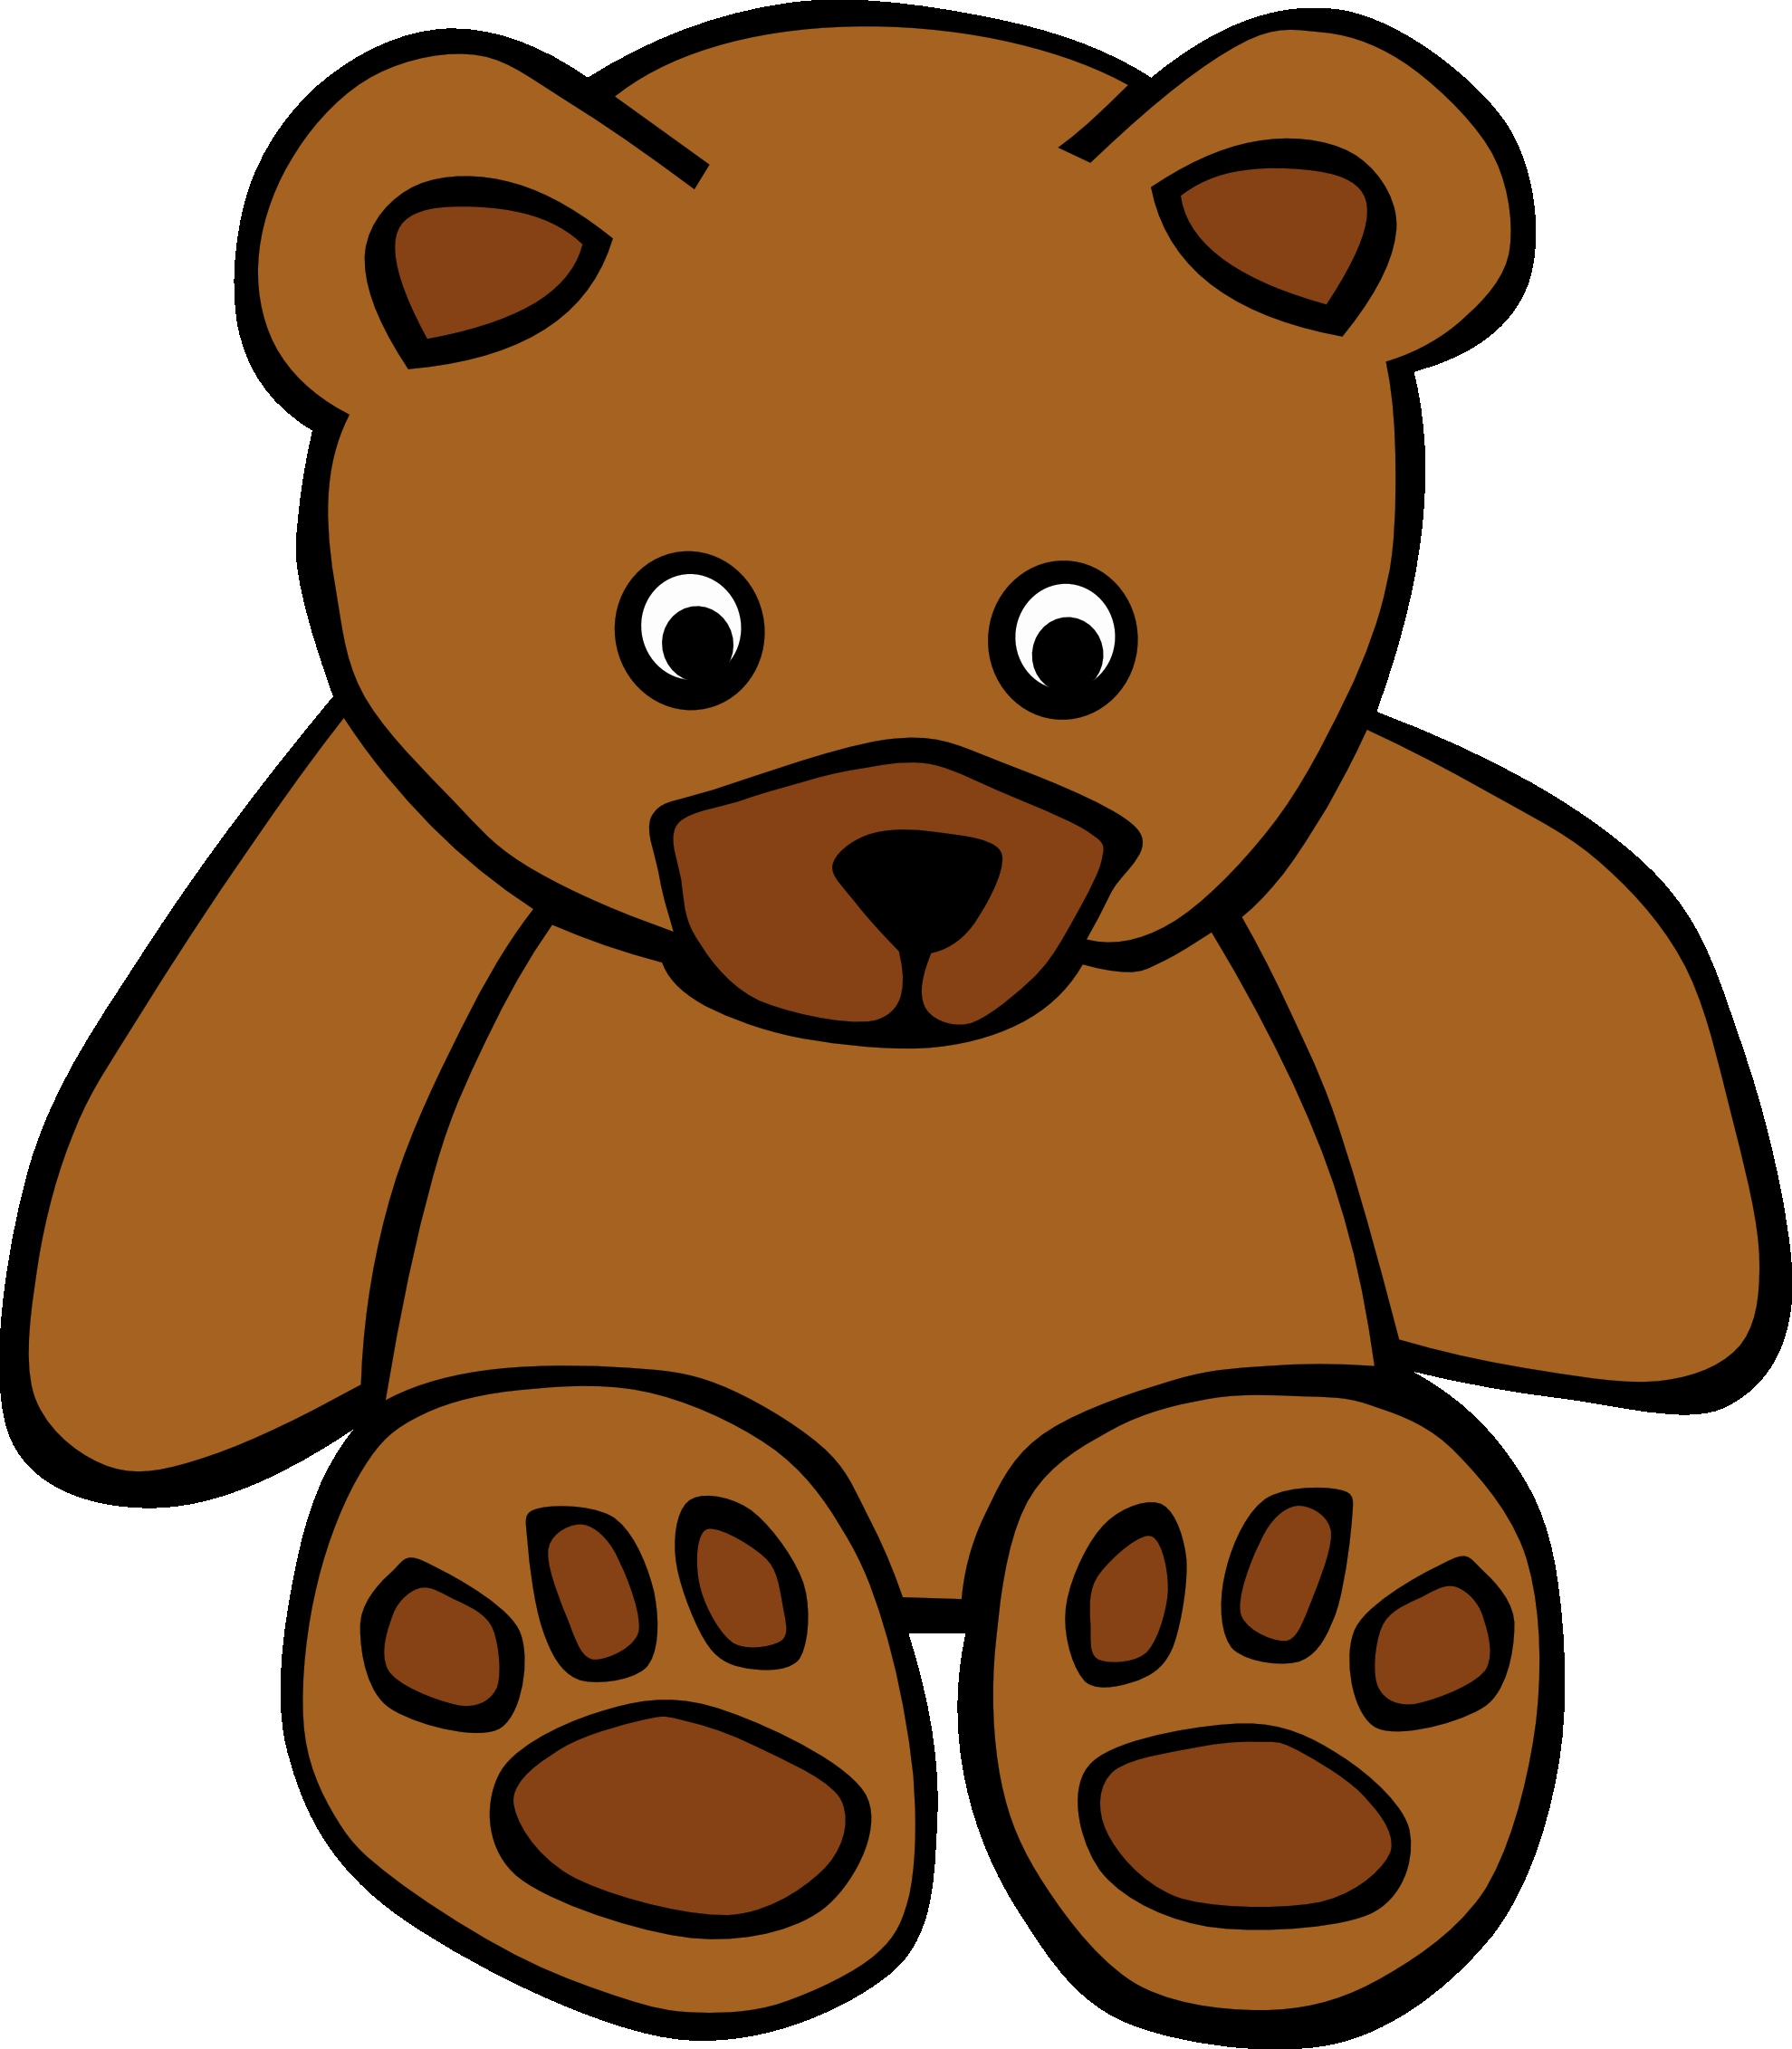 Bear standing up fresh. Brown clipart brown object clip freeuse library